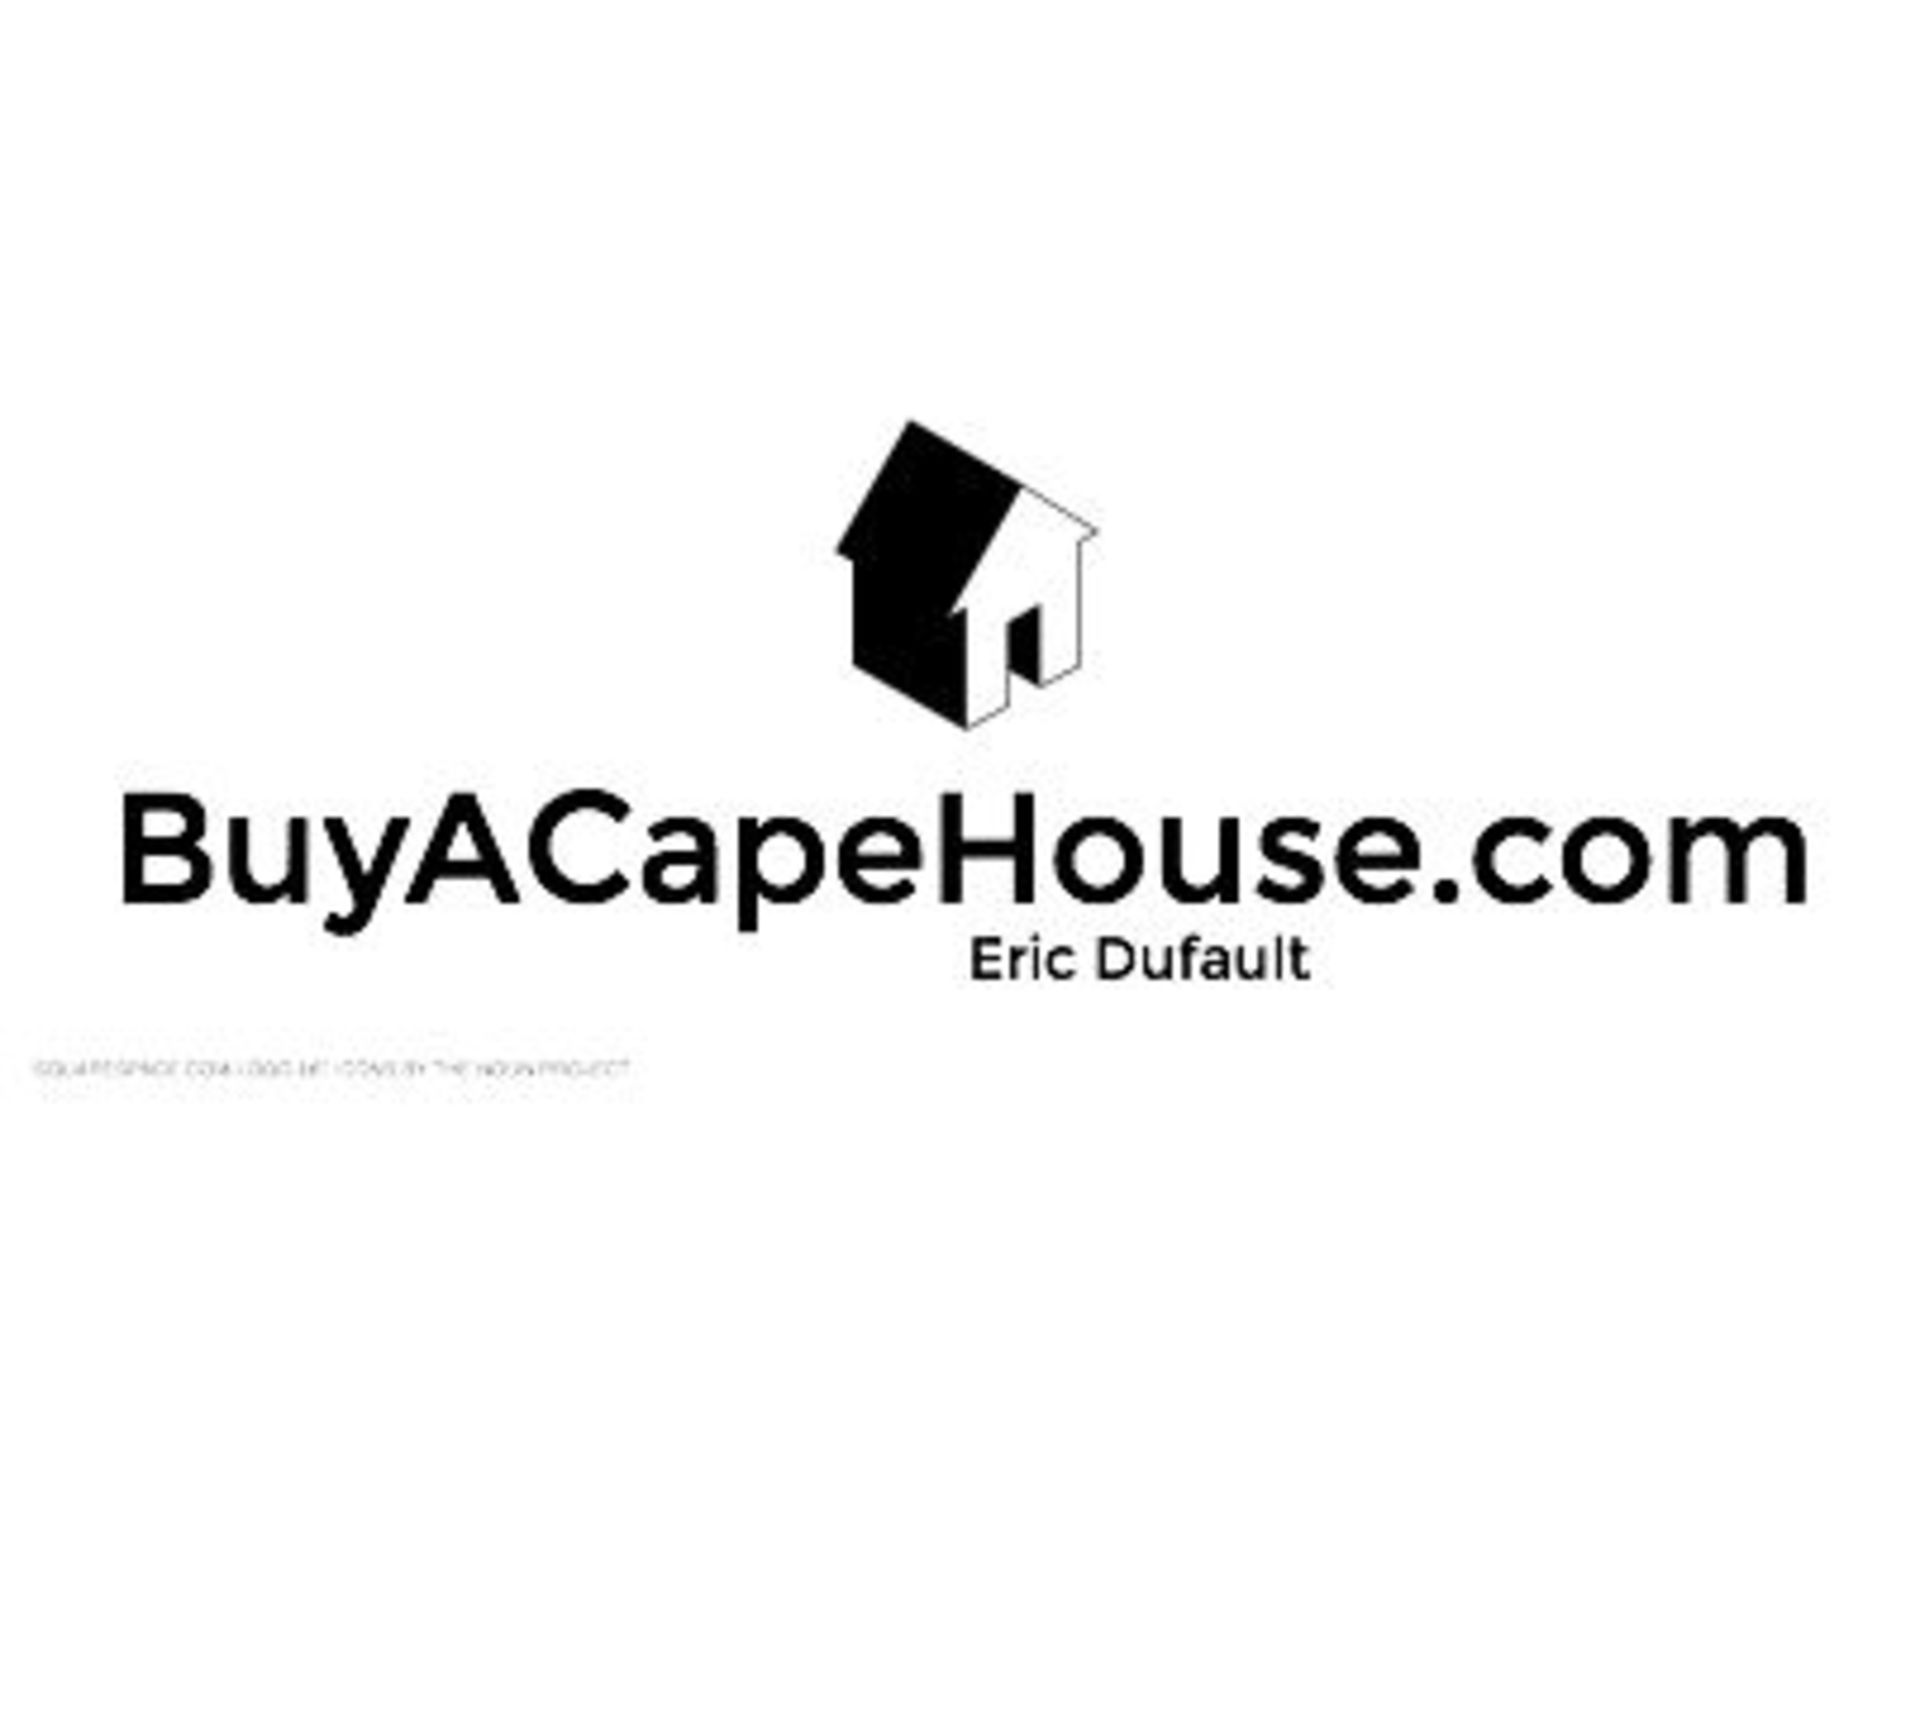 9 You'll Love If You Want To BuyACapeHouse in February